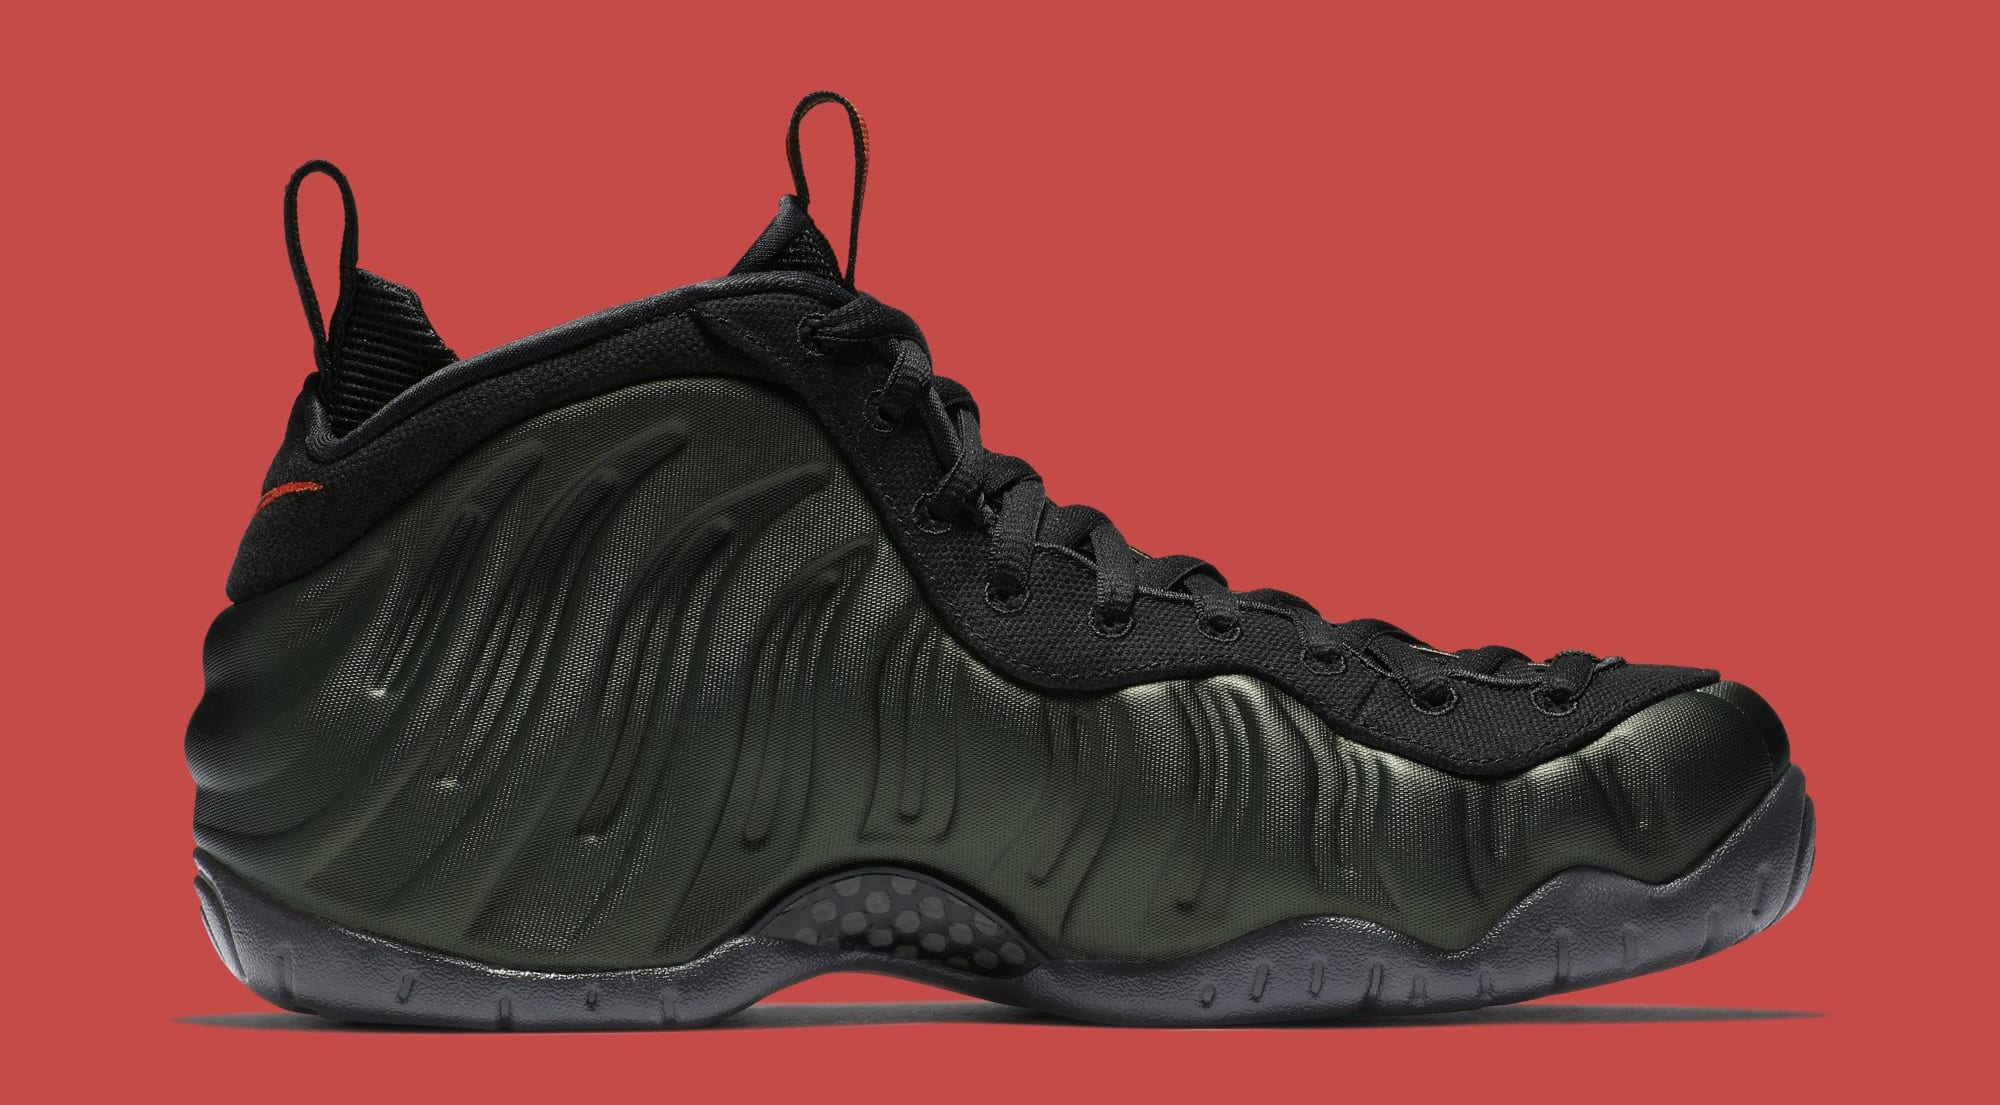 low priced 2d045 54afe Nike Air Foamposite Pro 'Sequoia' Release Date 624041-304 ...